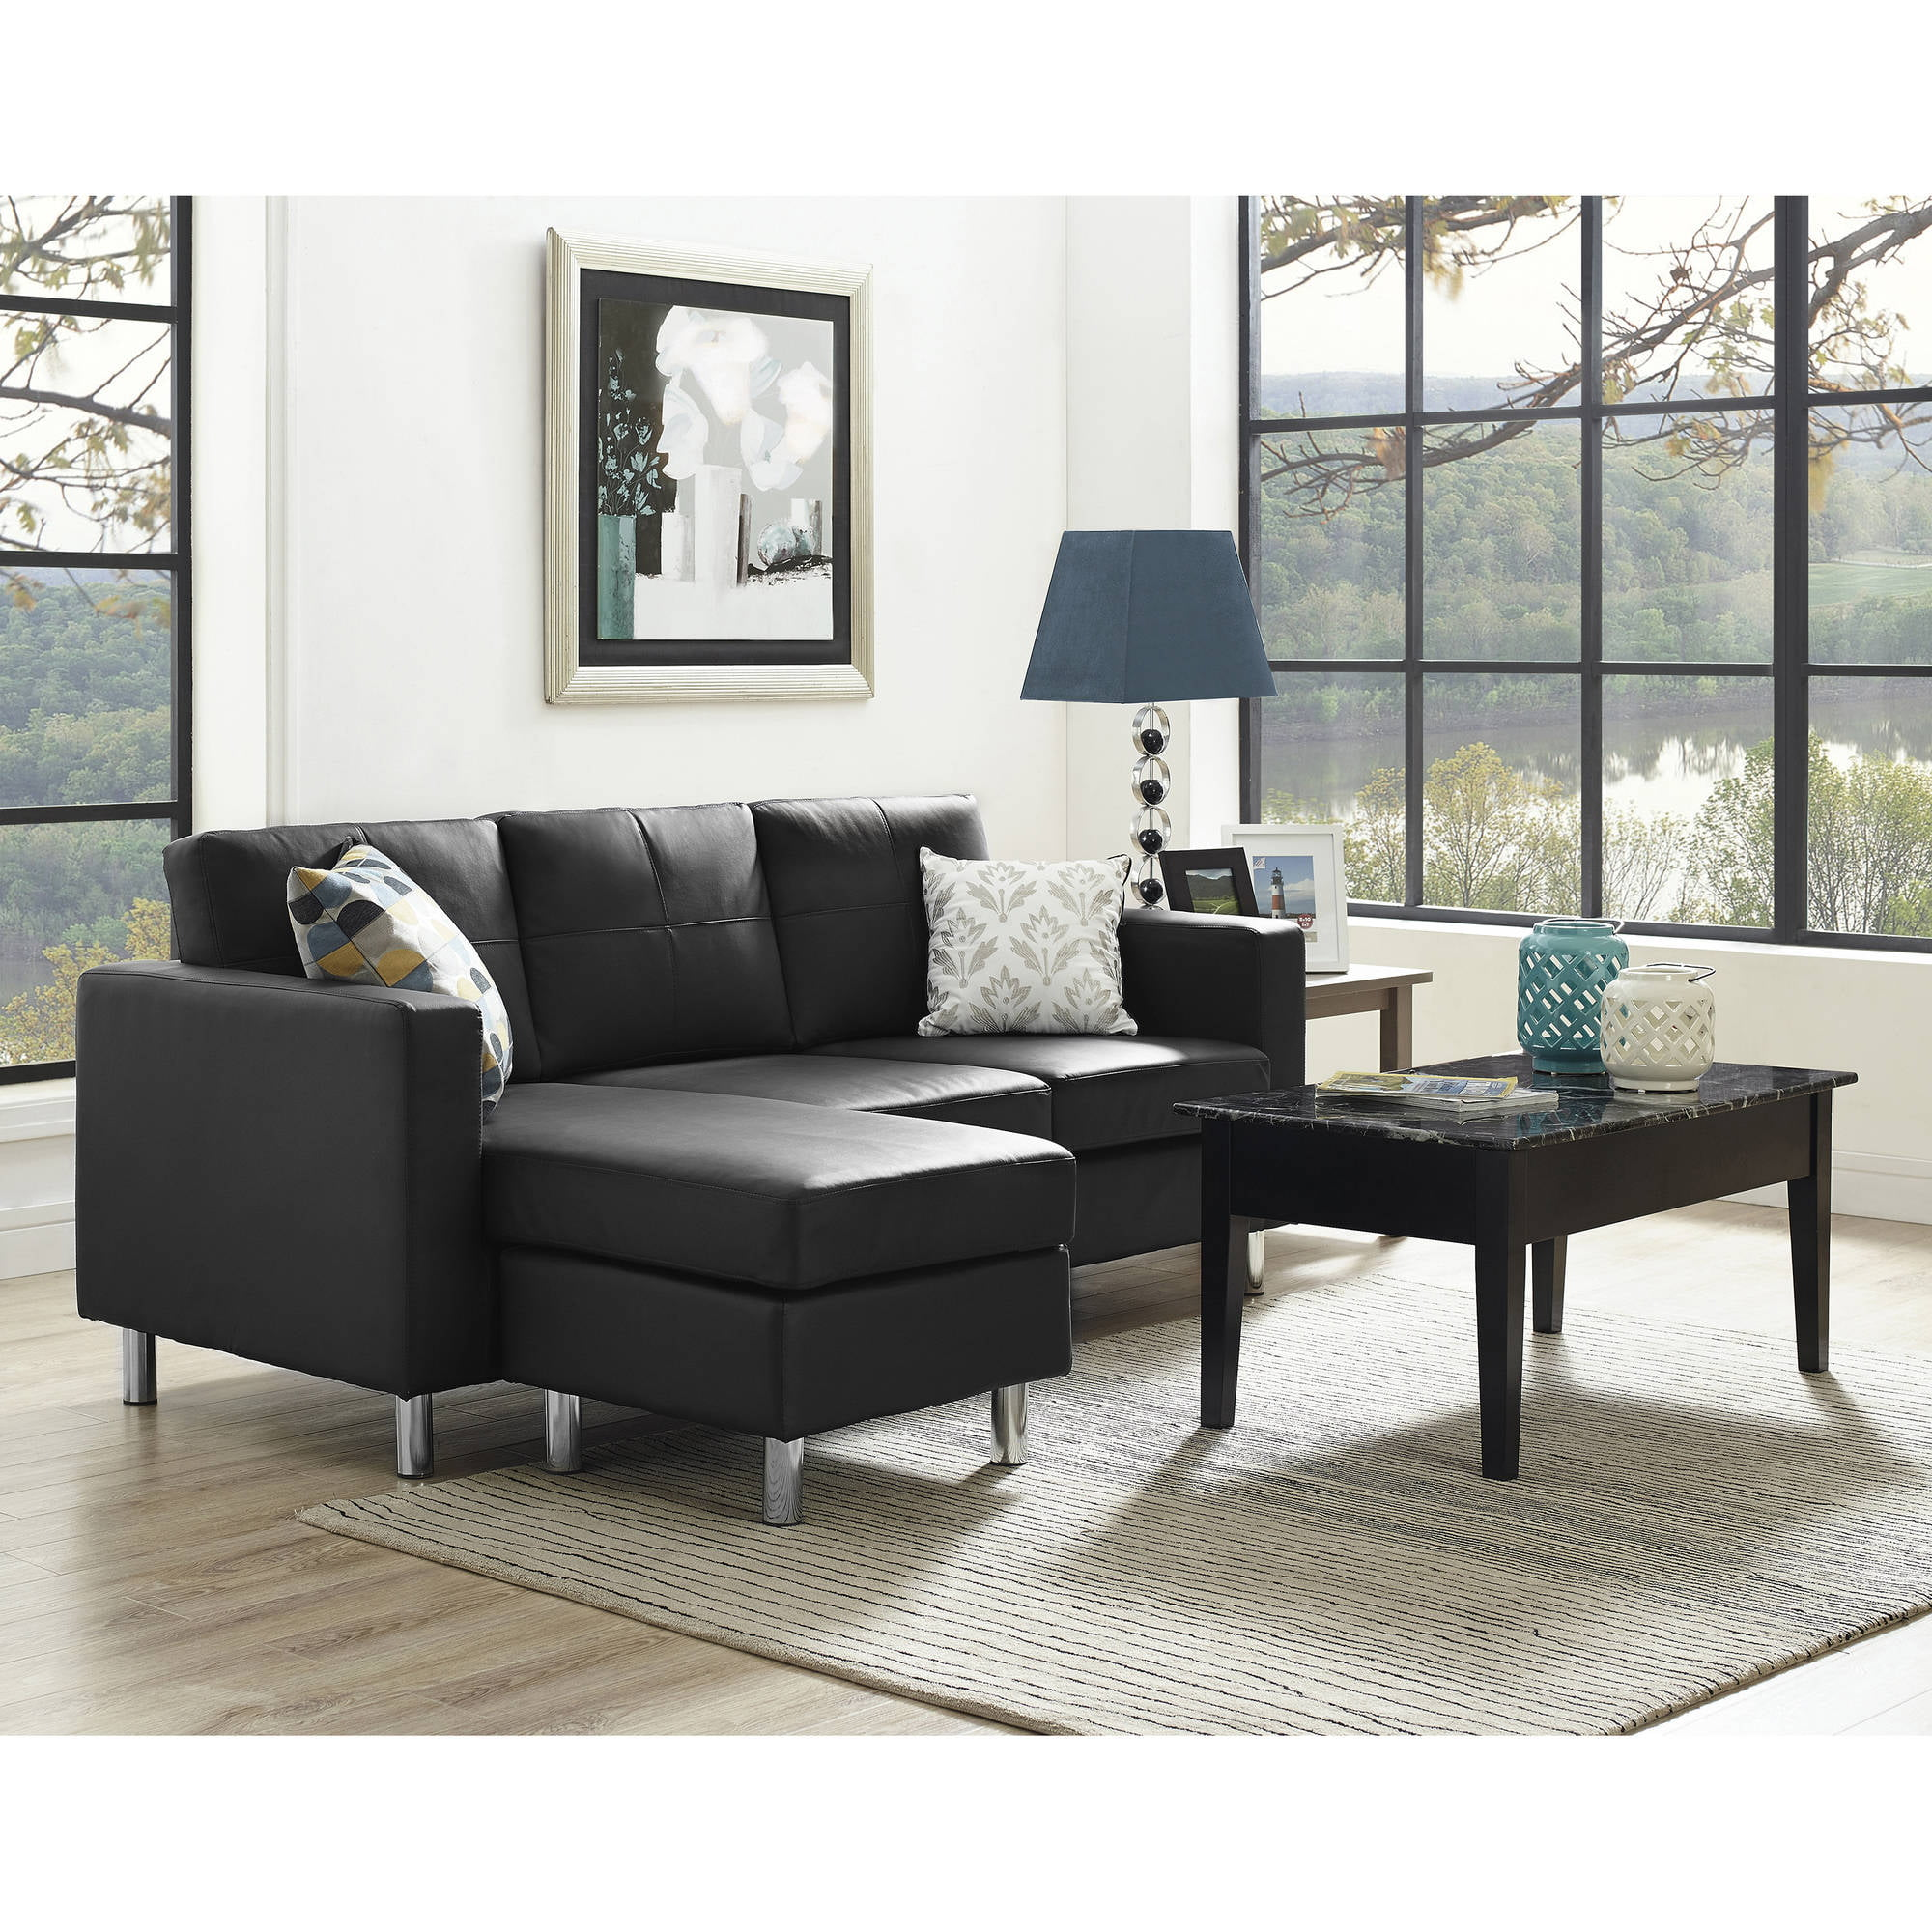 ufe sofia 2-piece dark brown microfiber modern living room right